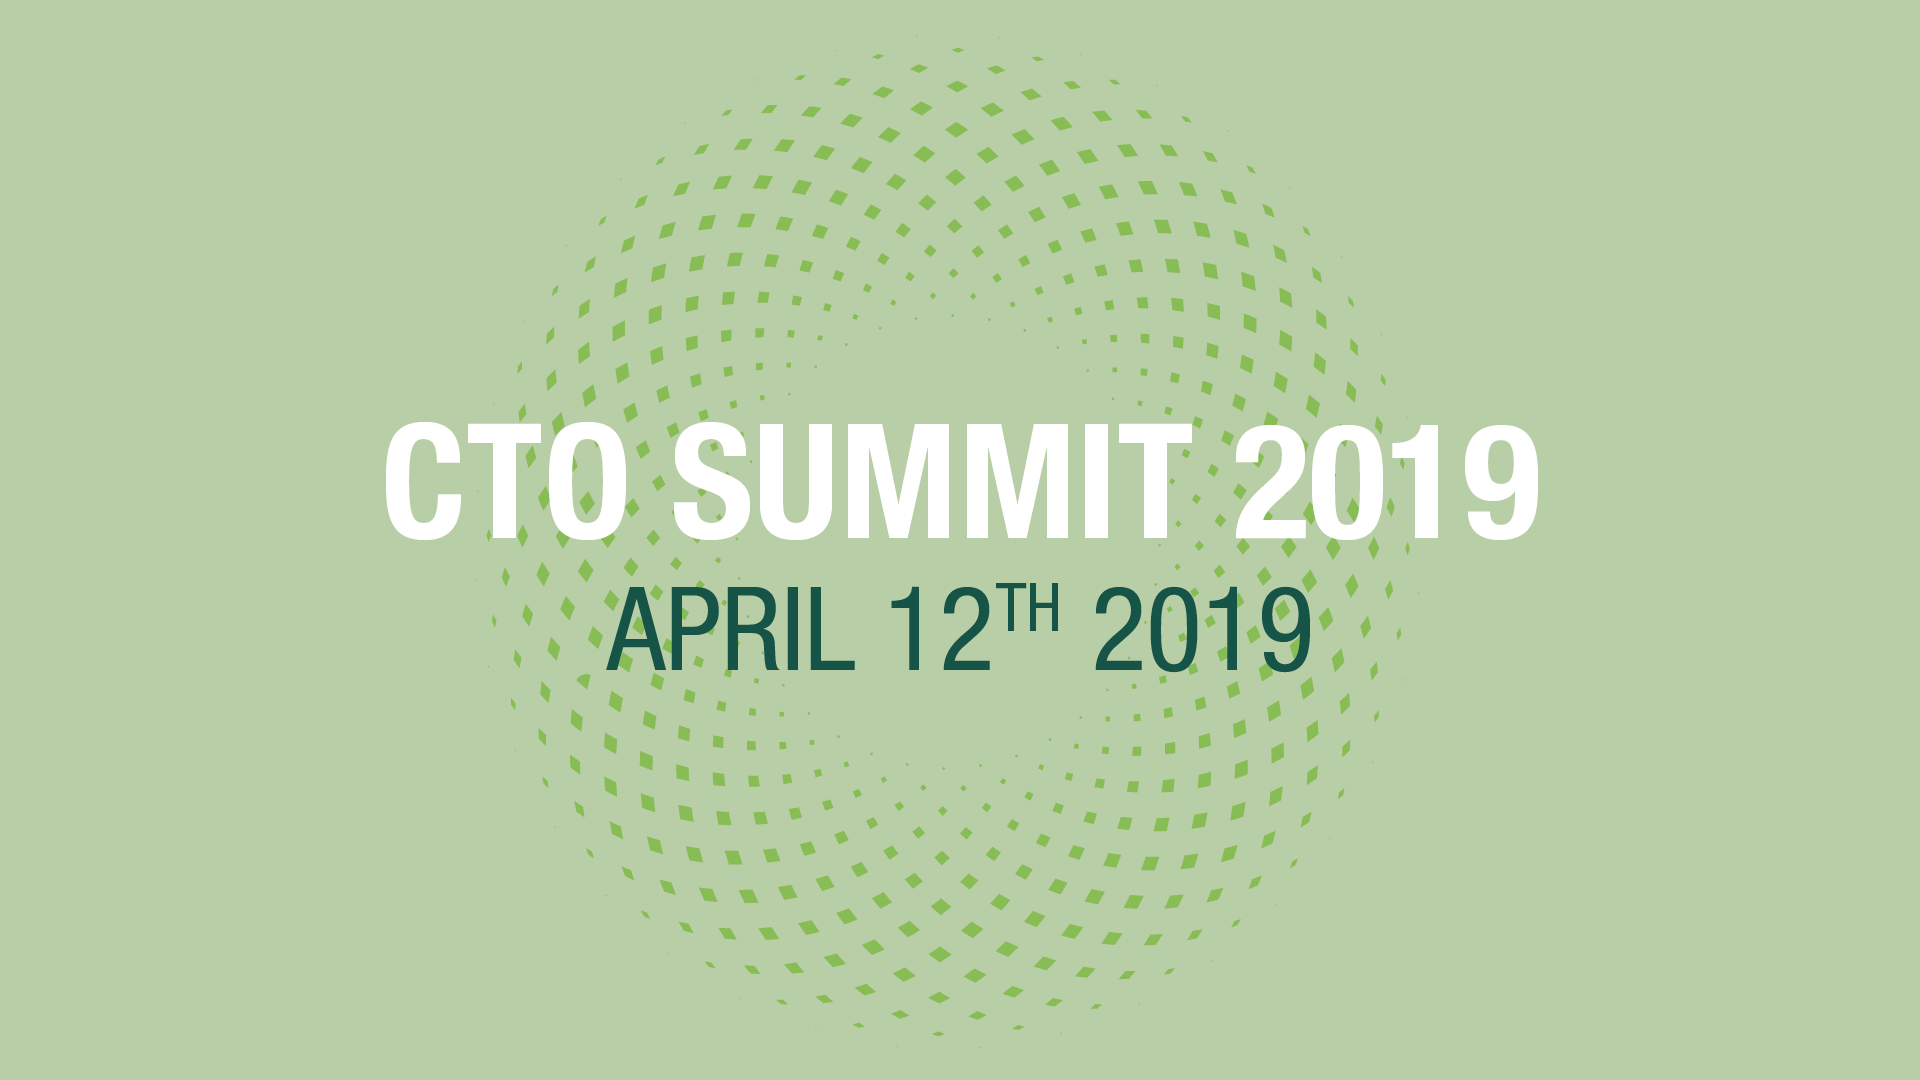 CTO SUMMIT 2019: Friday, April 12th Afternoon